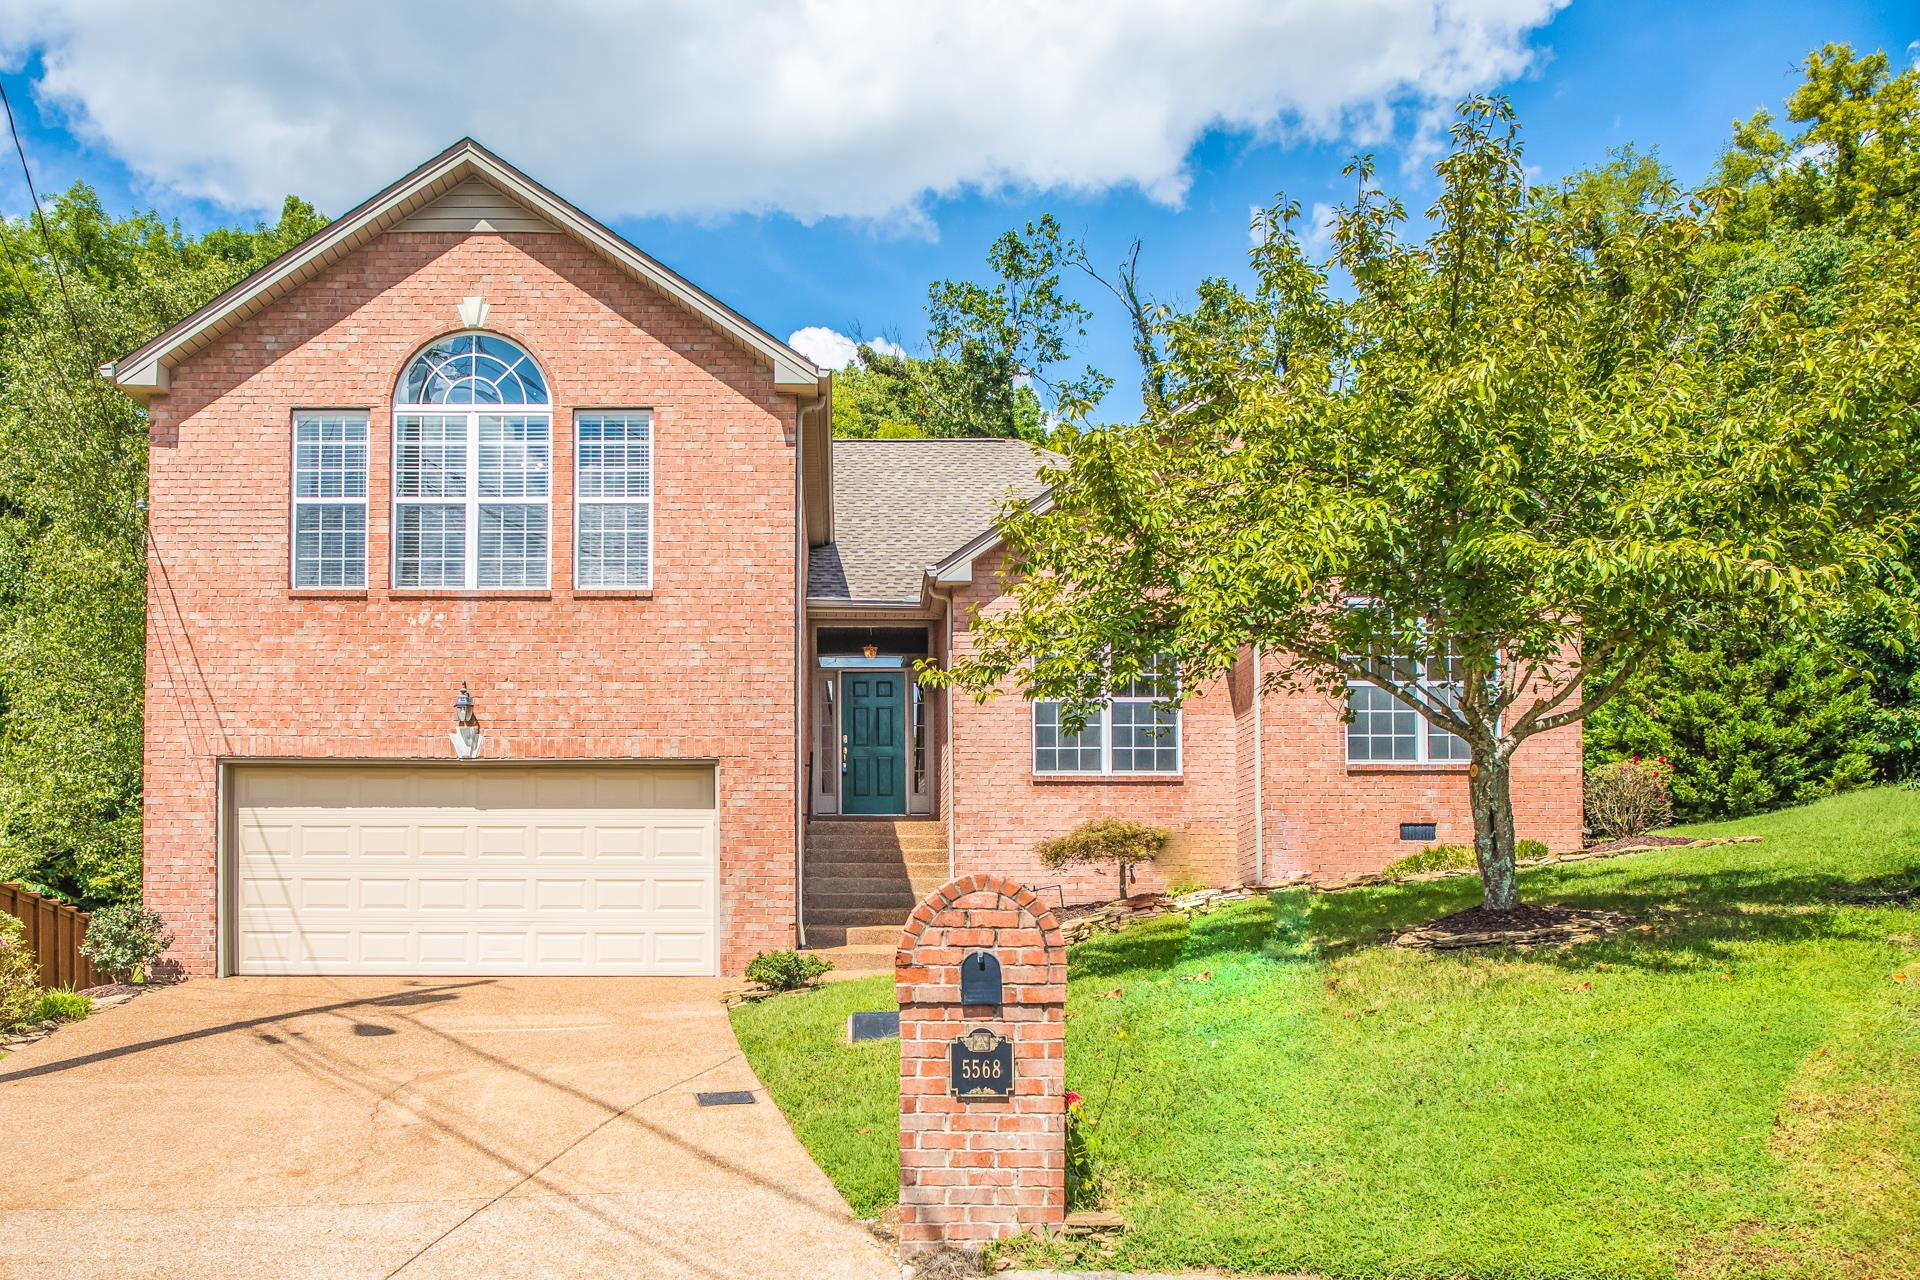 5568 Craftwood Dr, Nashville-Antioch, Tennessee